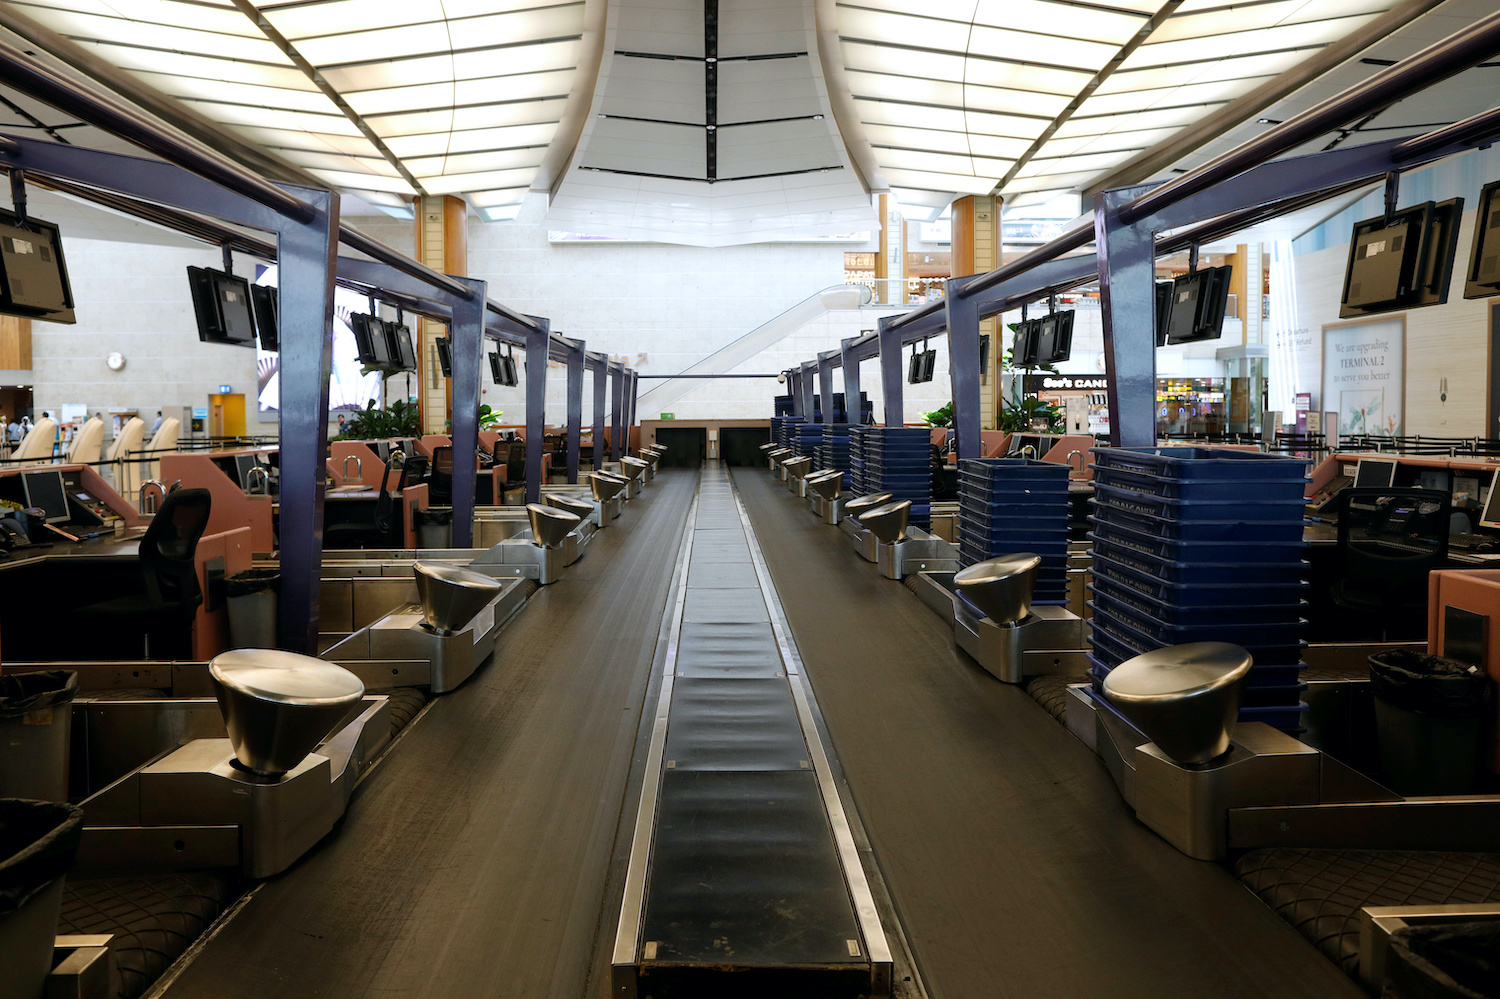 A baggage conveyor belt runs between rows of empty check-in counters at Changi Airport in Singapore. (Reuters Photo)